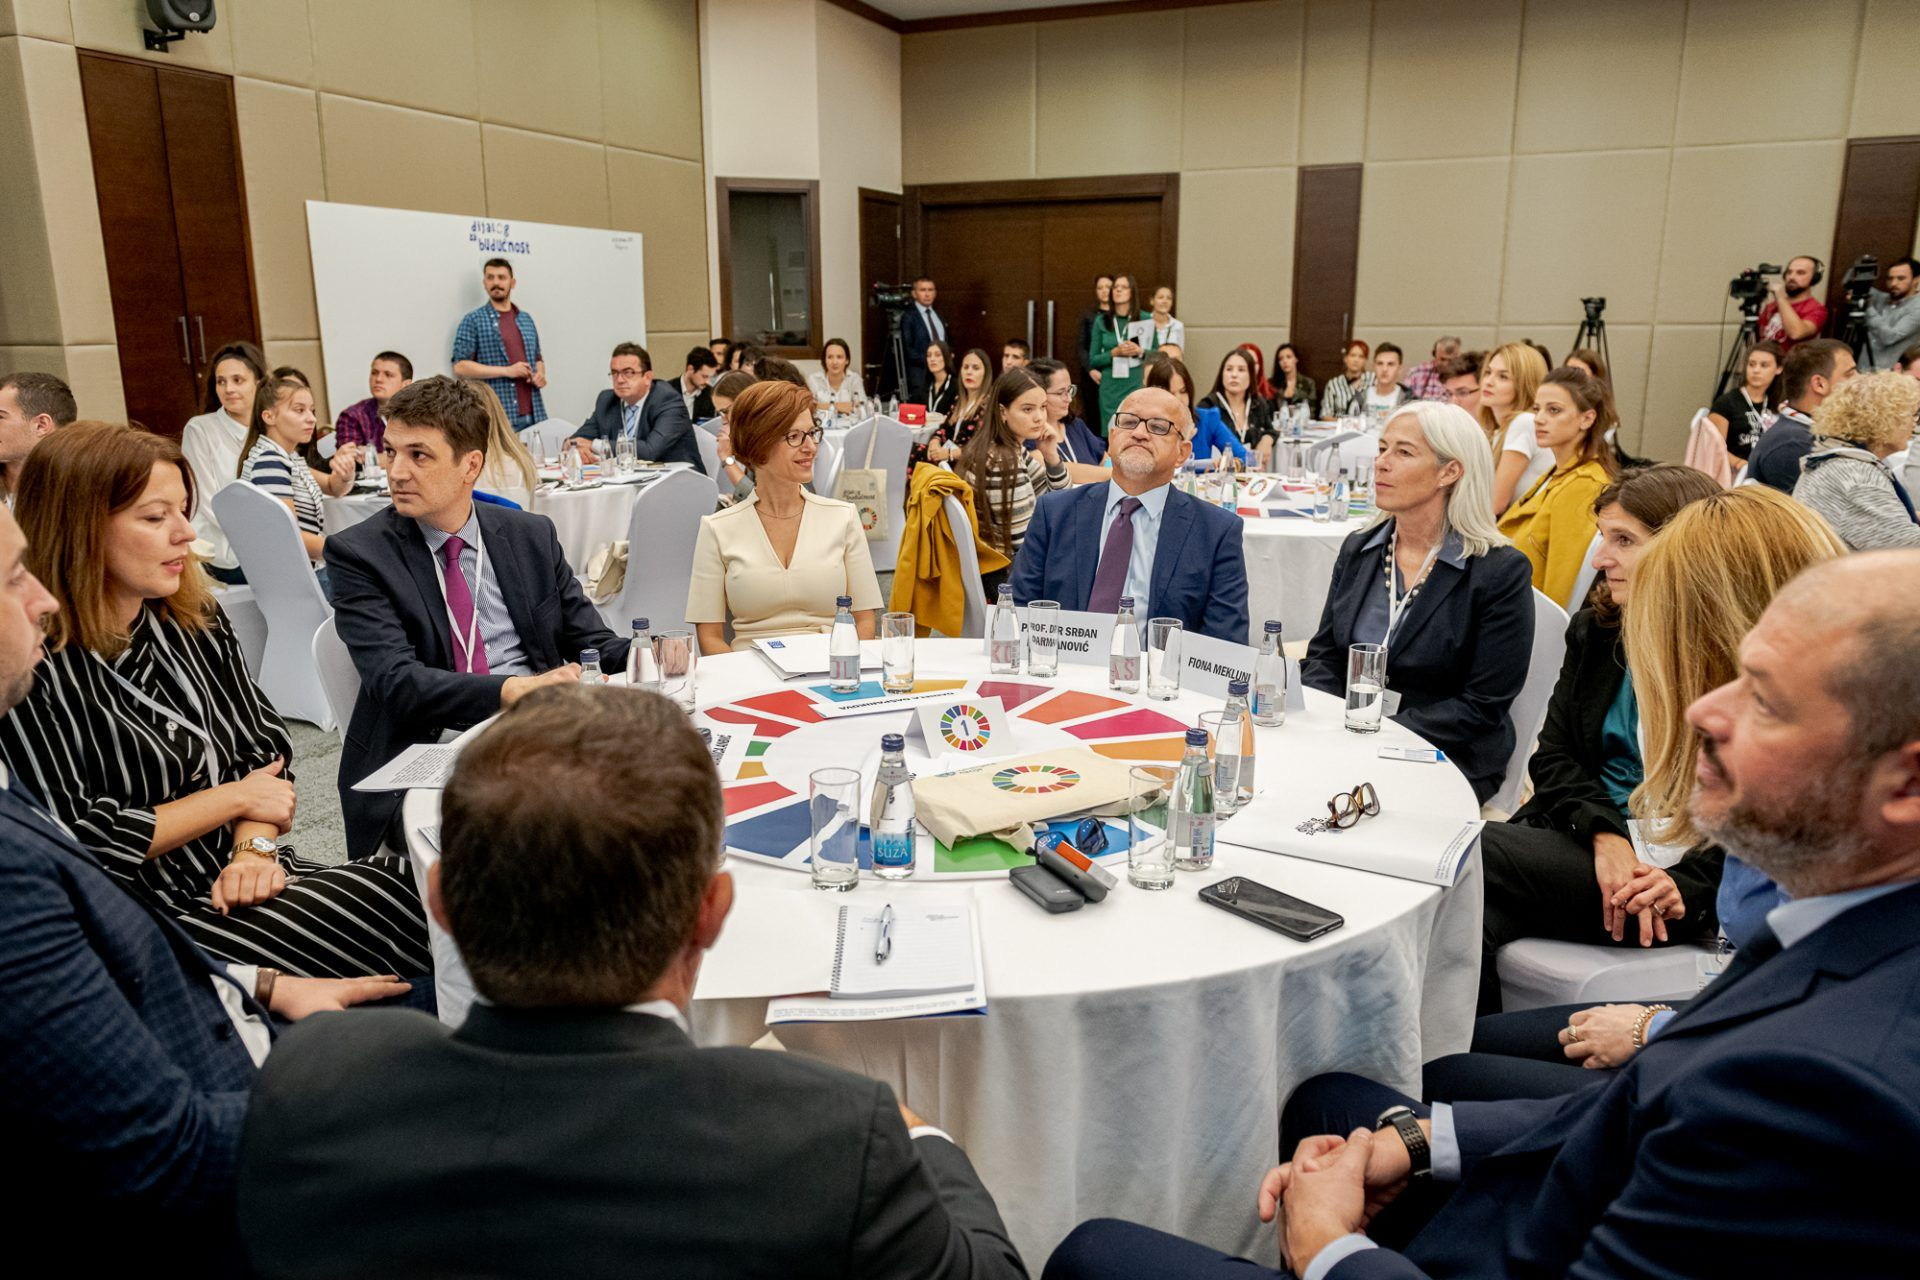 Days of Dialogue Lets Talk About the Future Opened in Podgorica